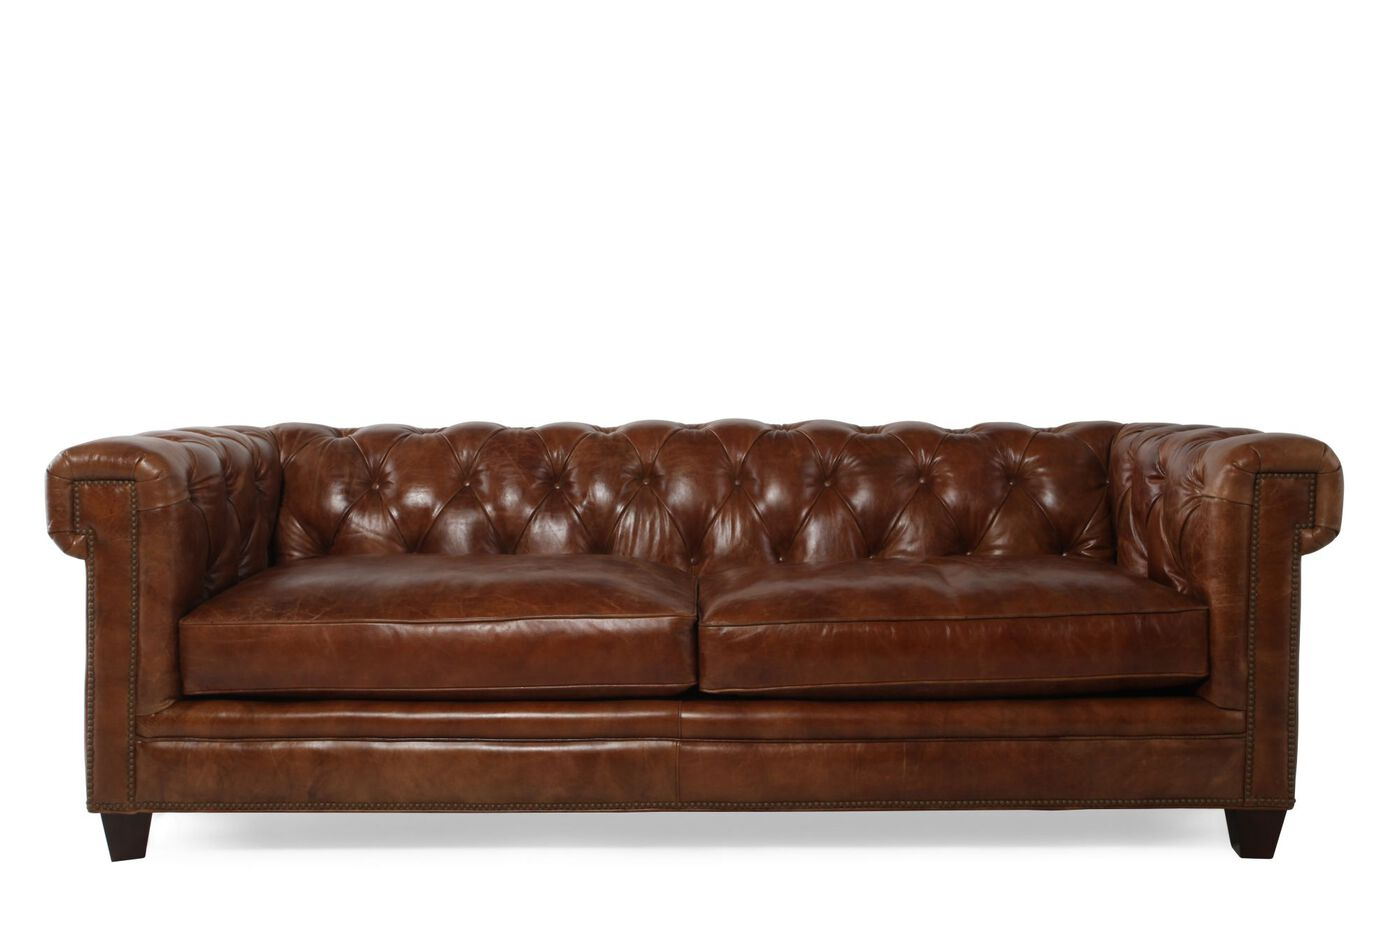 Button tufted leather 90 sofa in saddle brown mathis for Furnishing websites